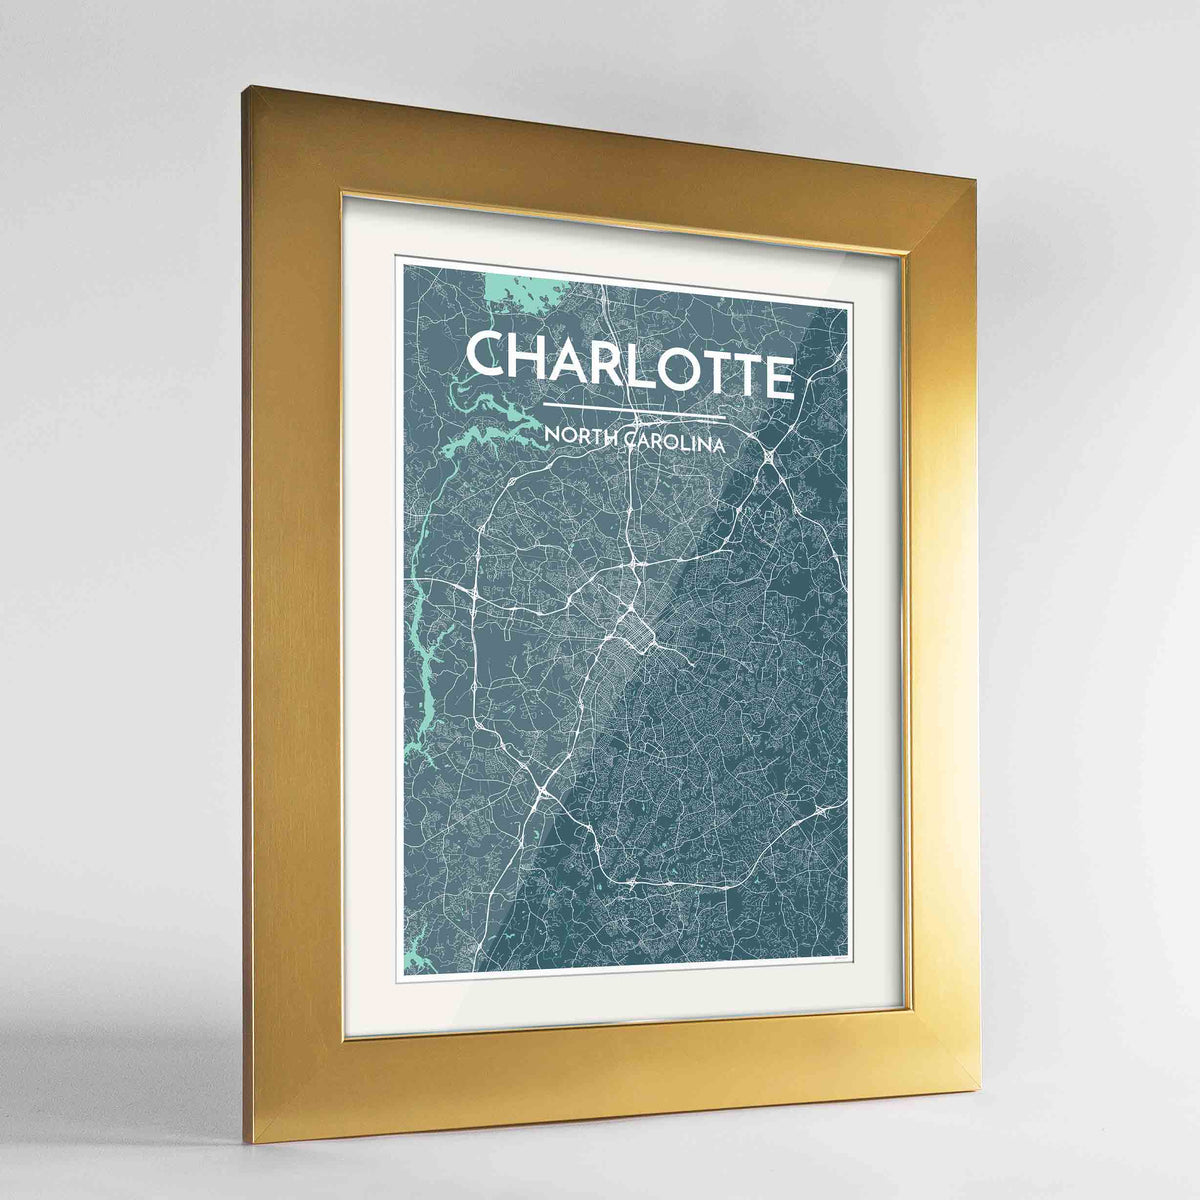 "Framed Charlotte Map Art Print 24x36"" Gold frame Point Two Design Group"